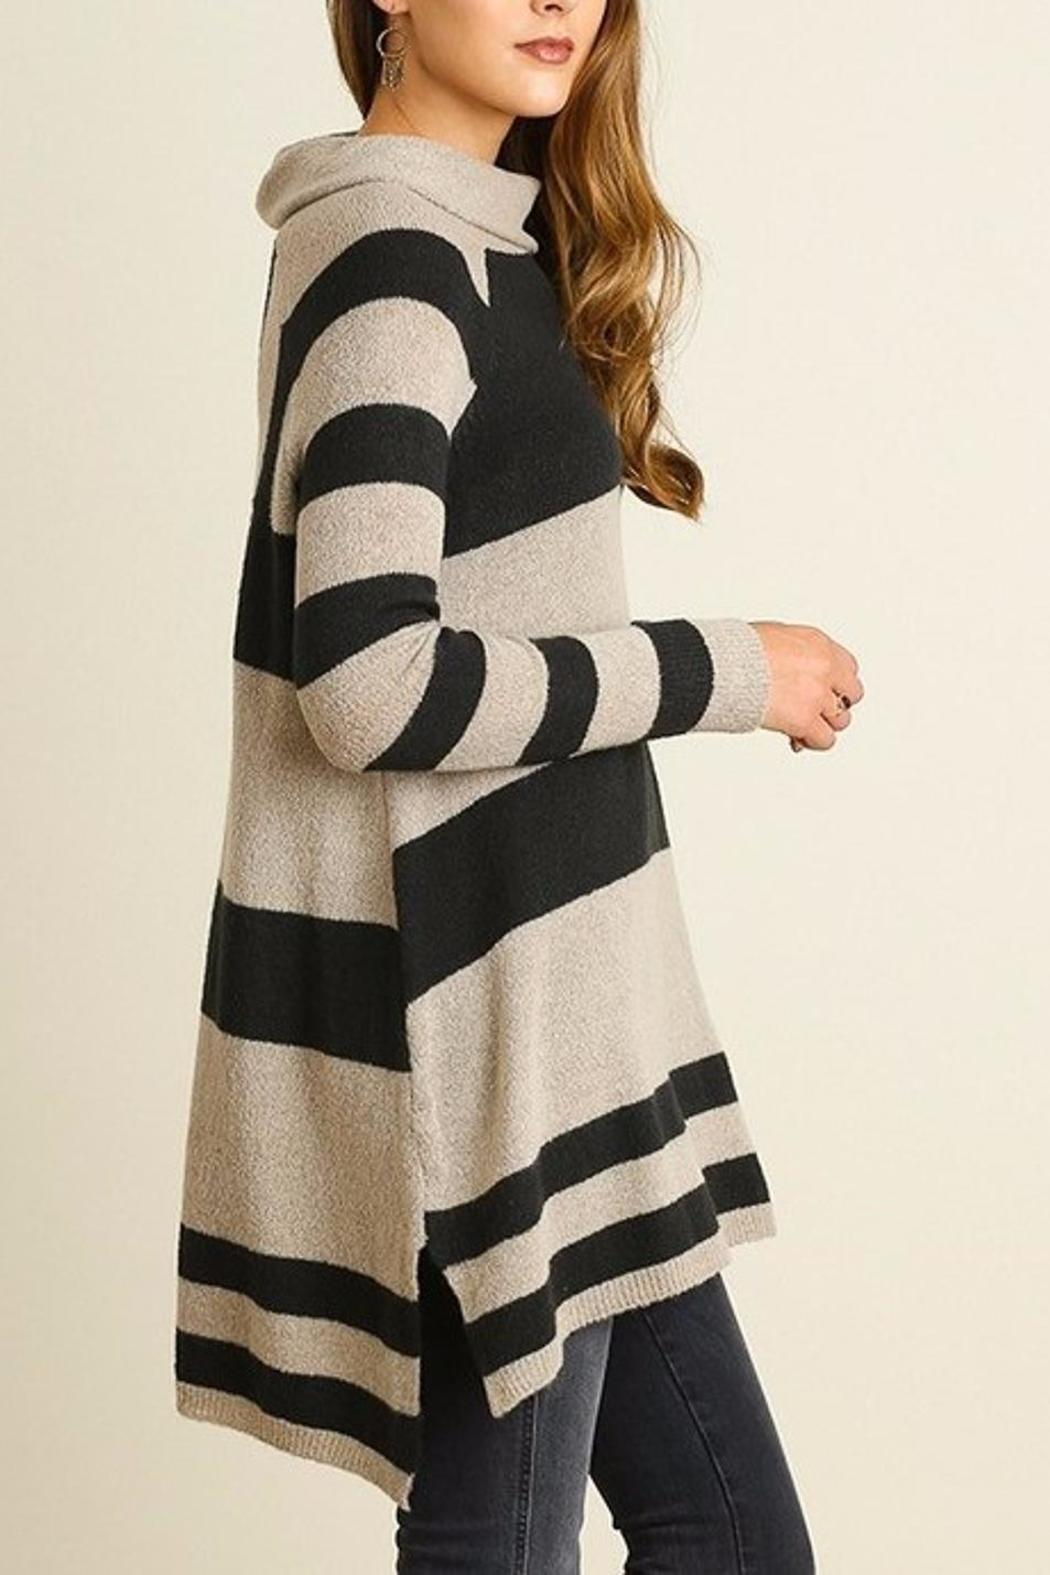 People Outfitter Stripe Knit Tunic - Side Cropped Image